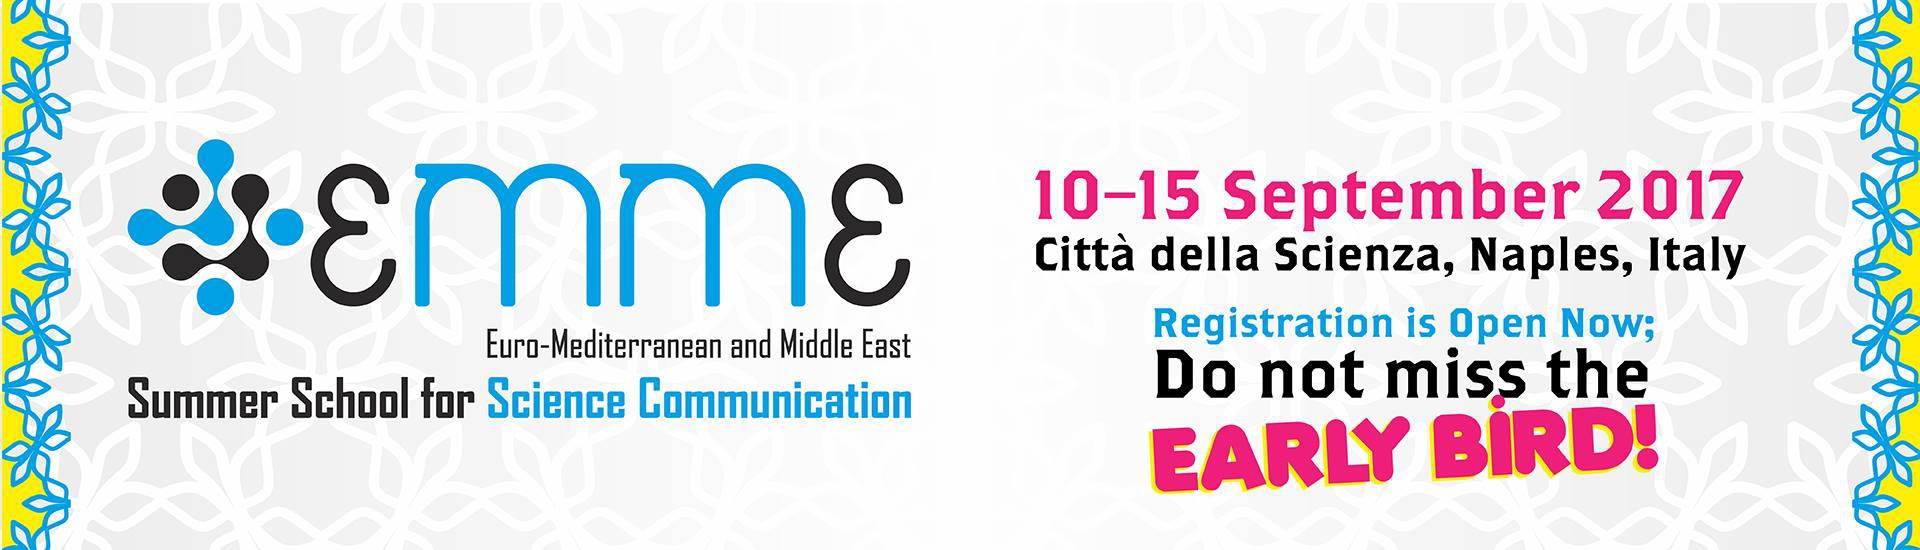 2017 EMME edition, 10-15 September, Naples, Italy.